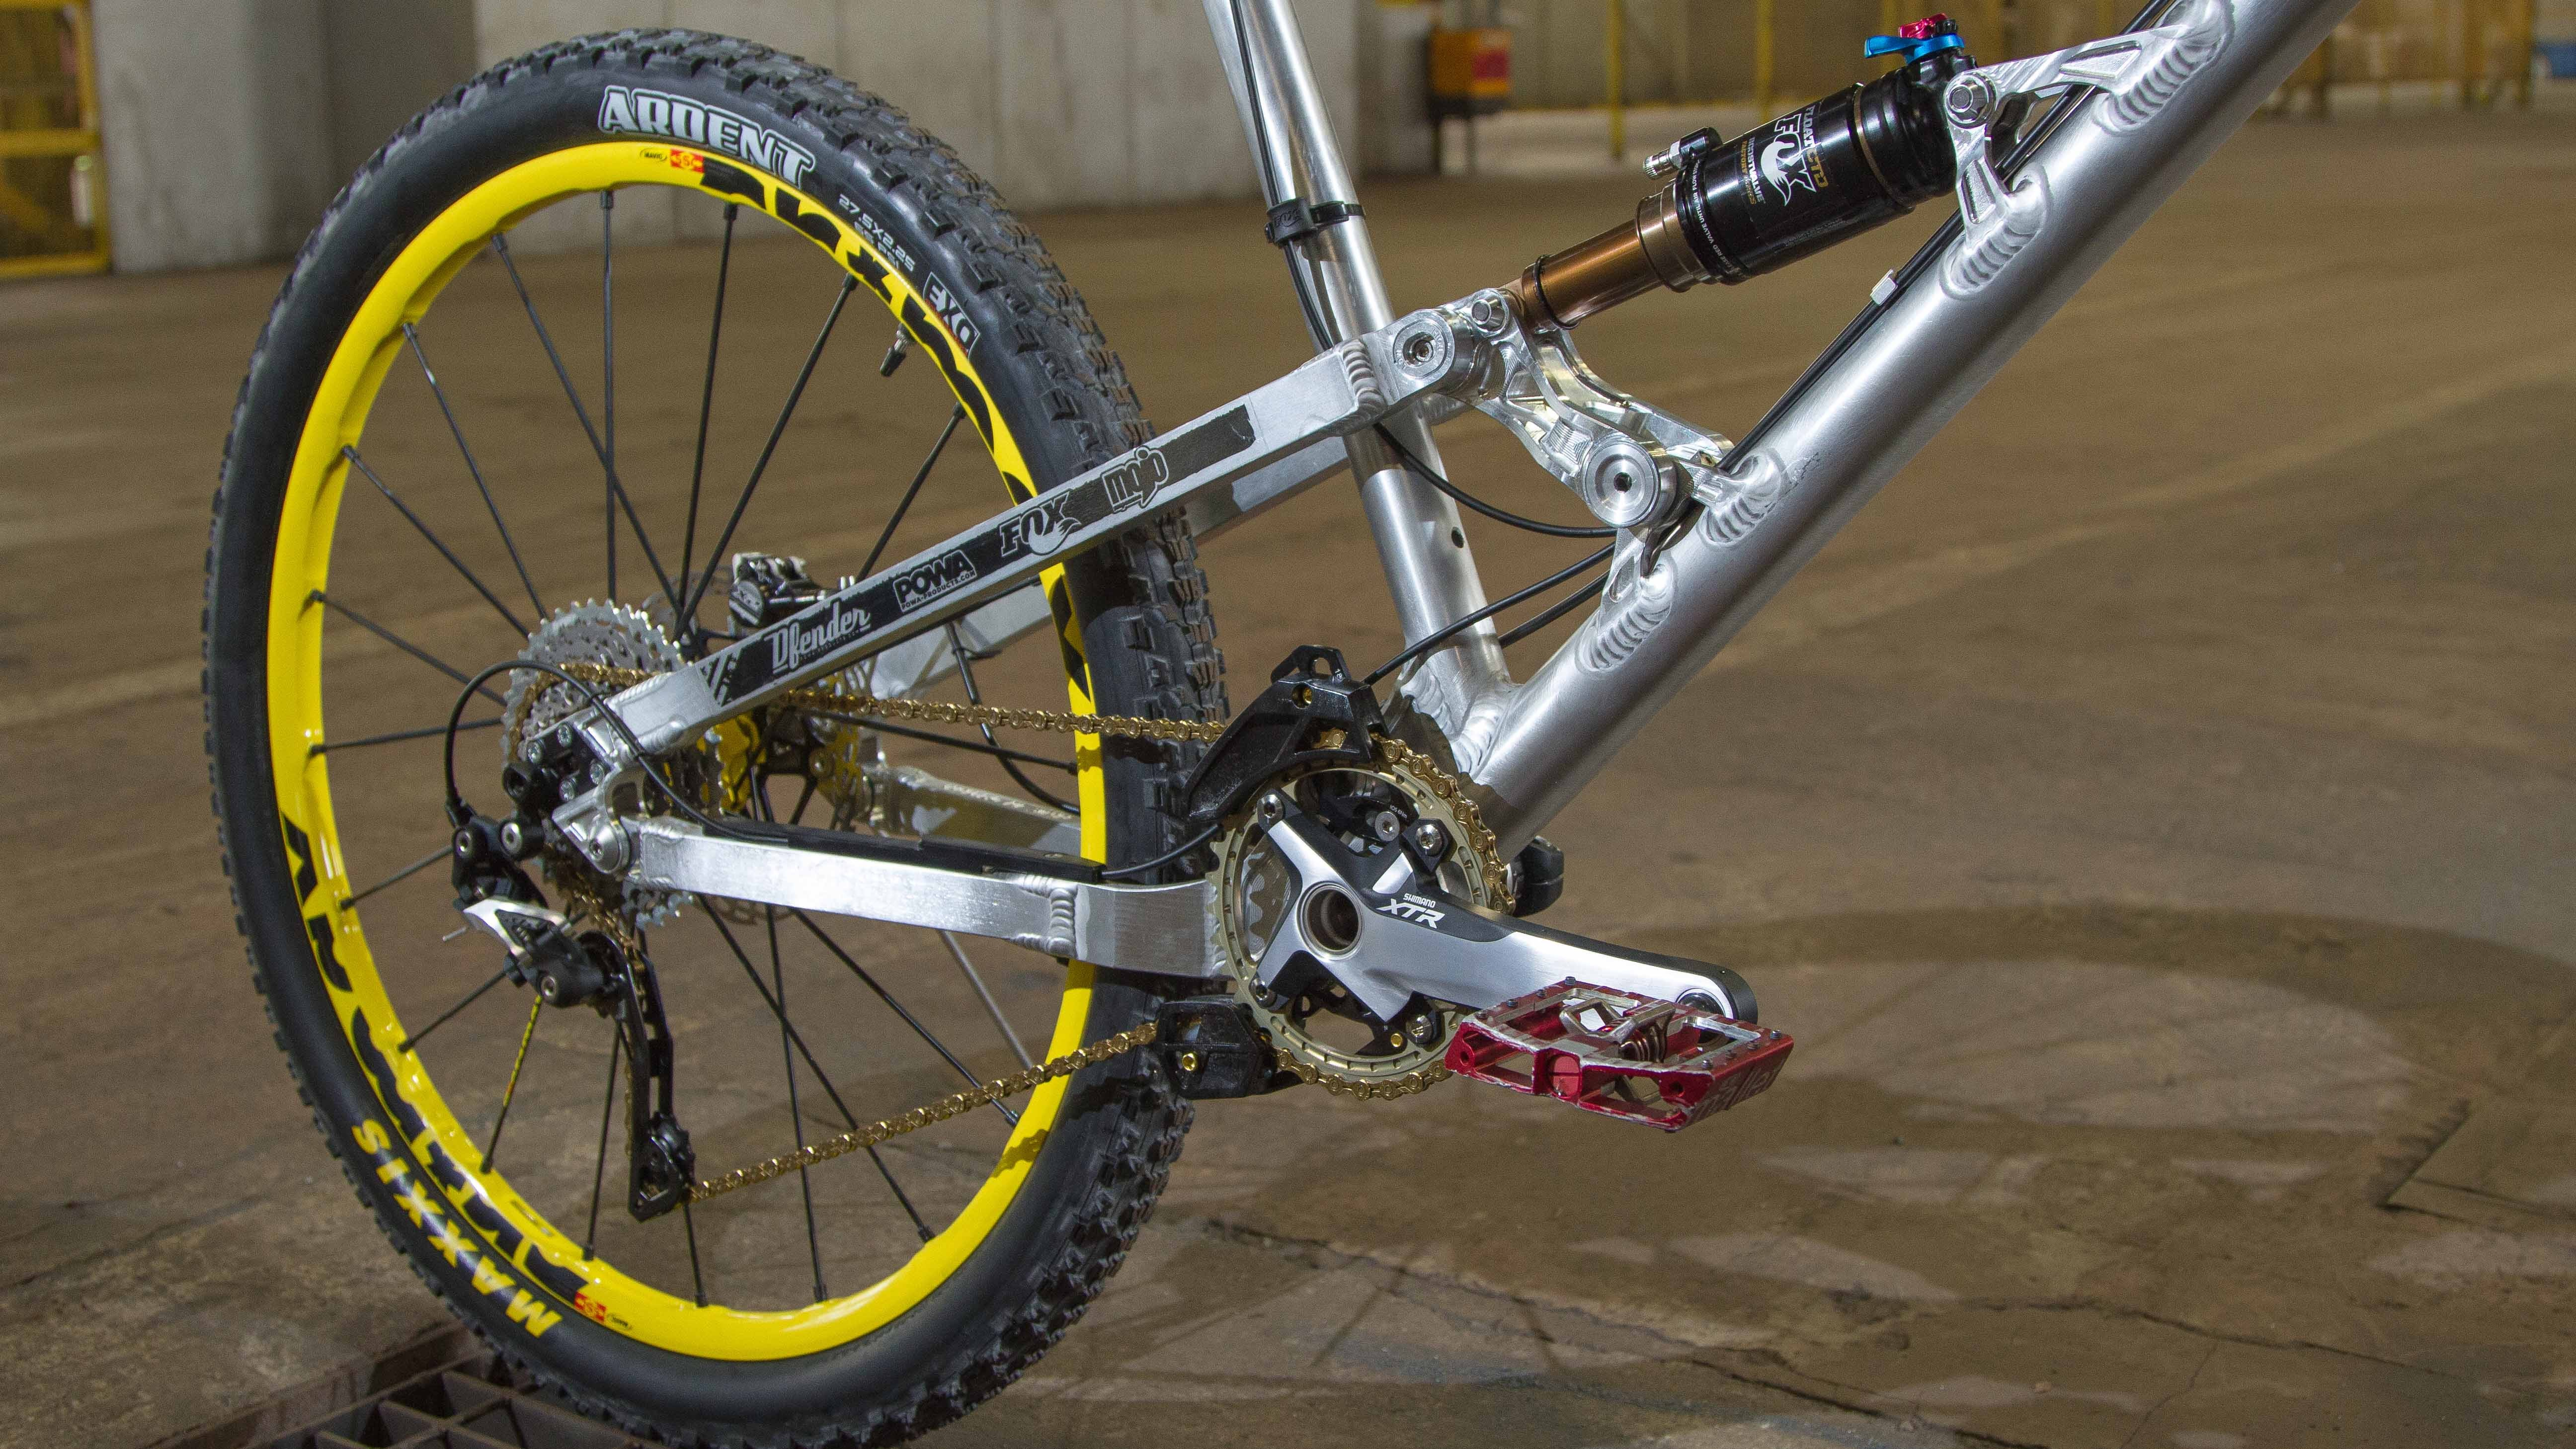 At 1,295mm, the Nicolai's wheelbase is all about stability at speed. Going against the trend for short rear ends, Chris's bike has hugely long 450mm chainstays, with additional 455 and 460mm swingarms on their way to make this lengthy beast even longer